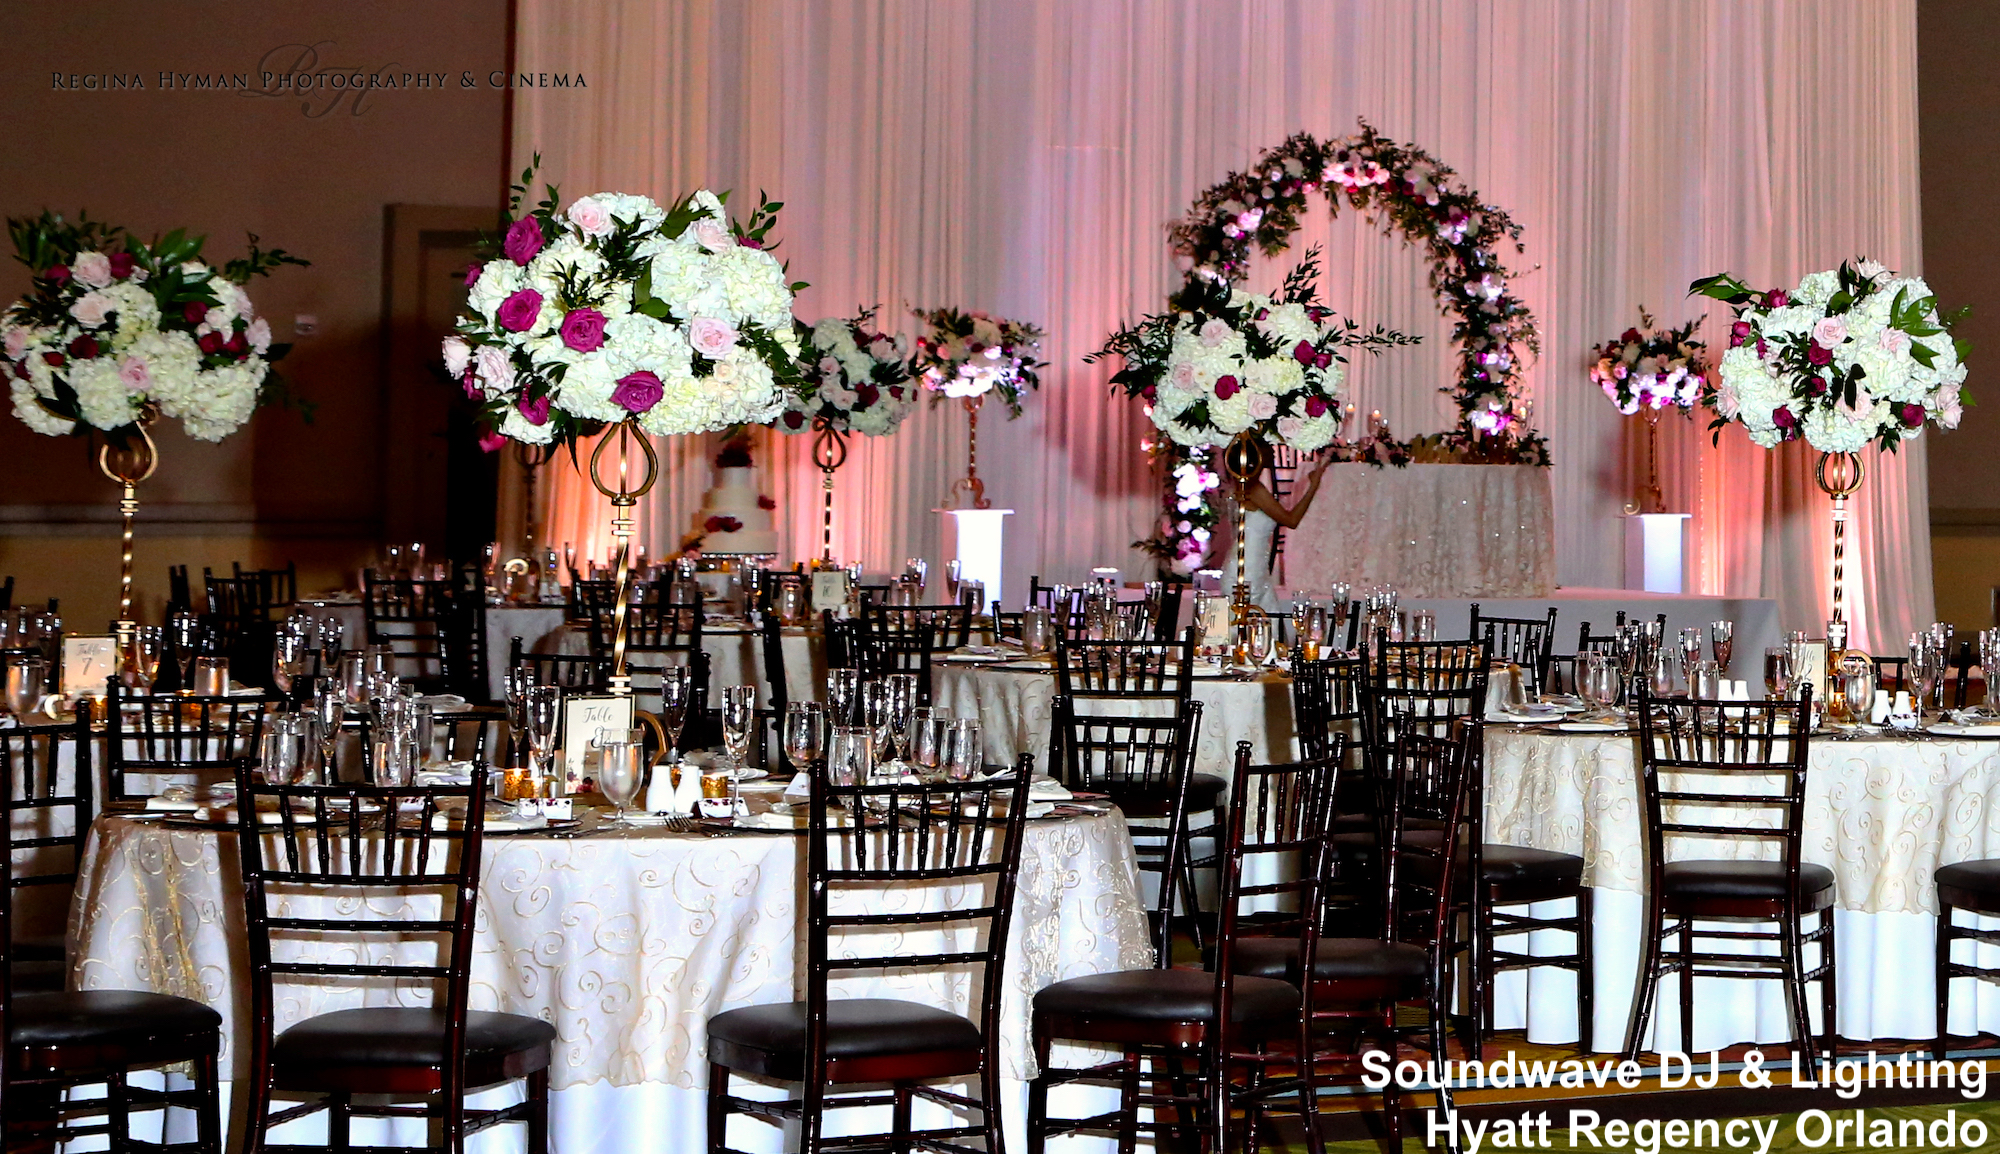 hyatt regency orlando - orlando wedding venue - orlando wedding lighting - soundwave entertainment